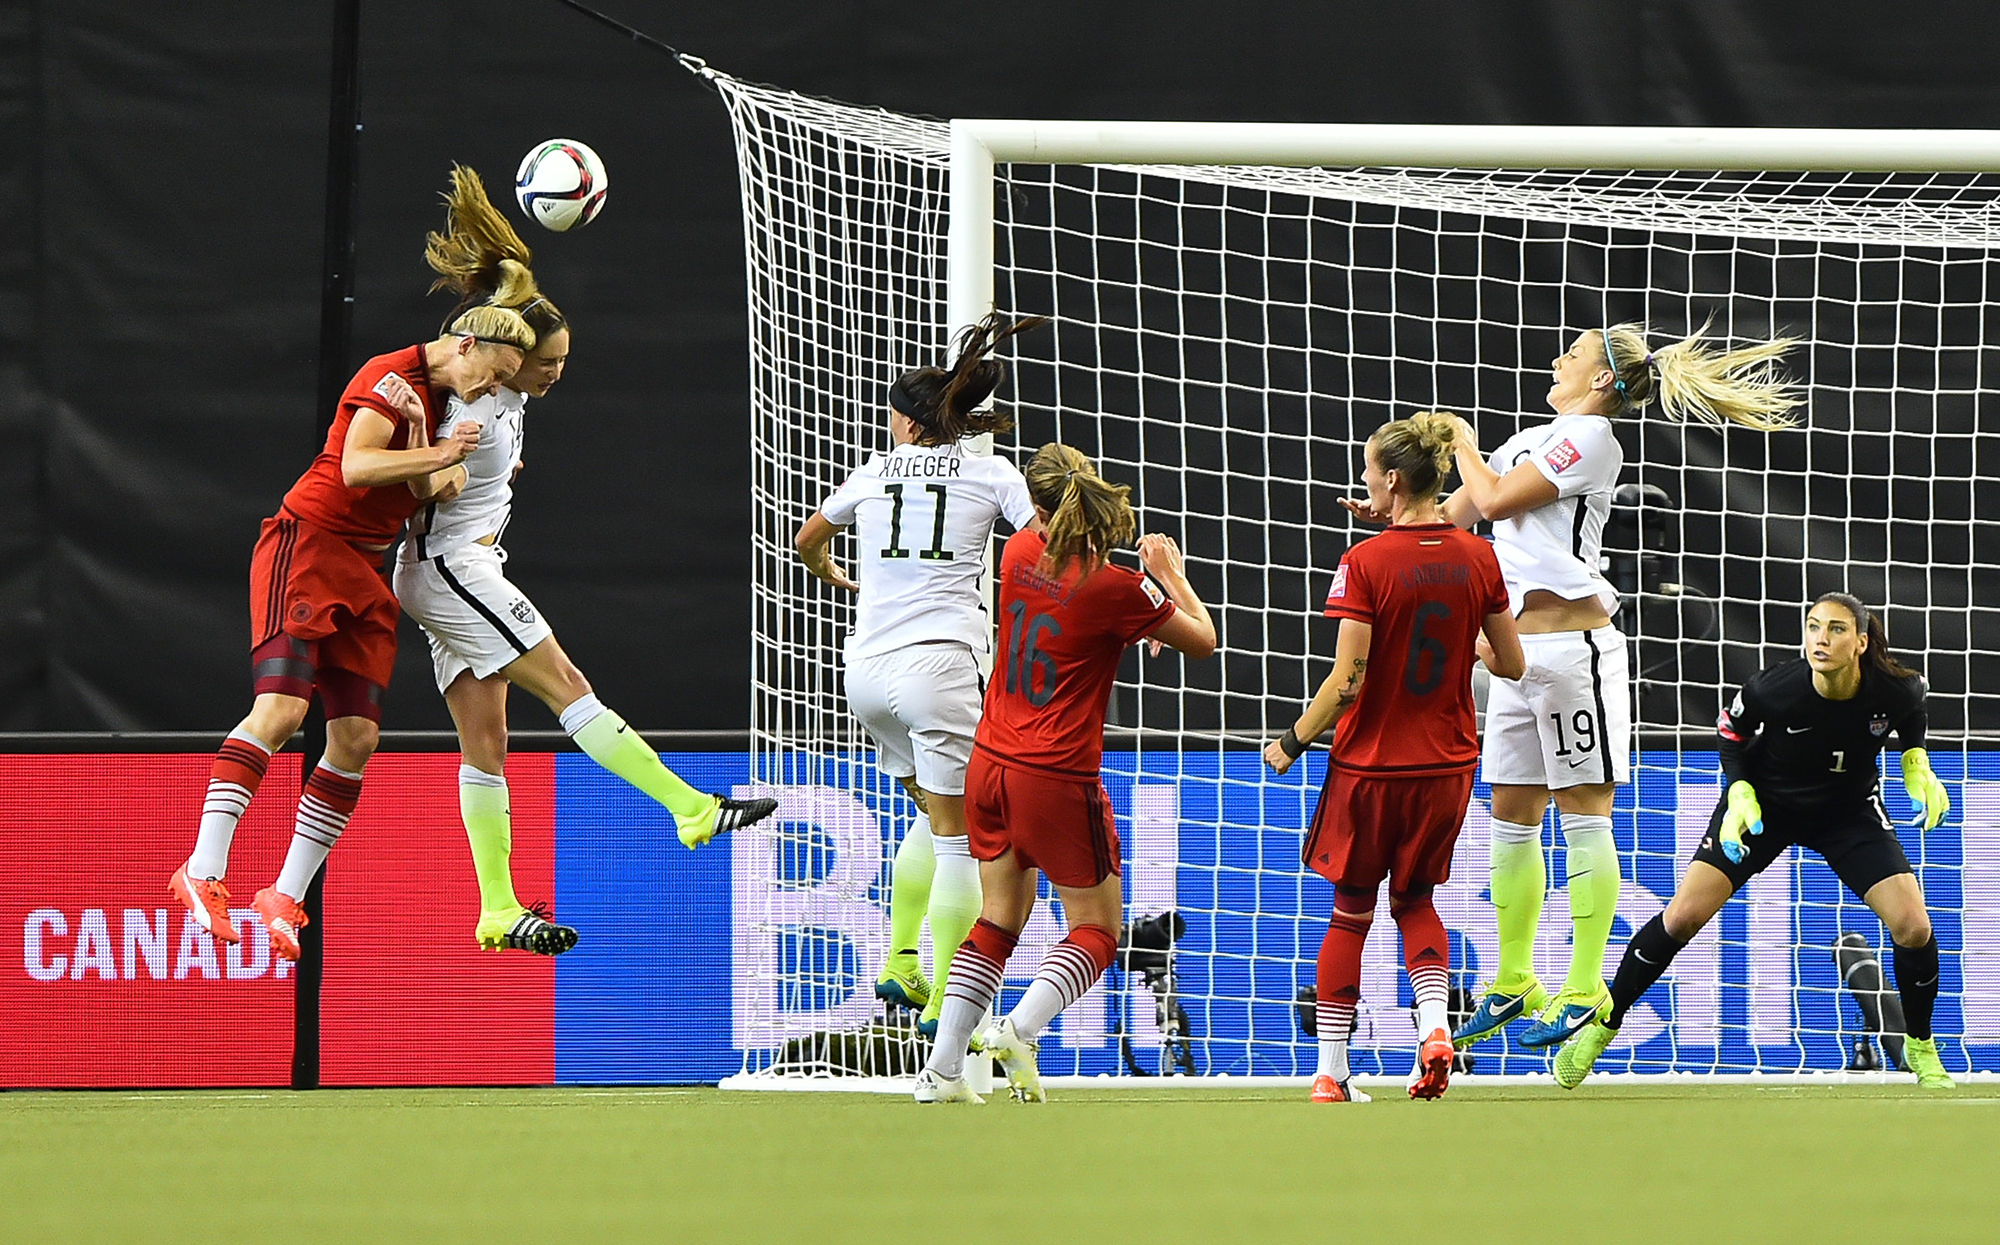 Would Banning Headers In Soccer Solve The Concussion Problem?